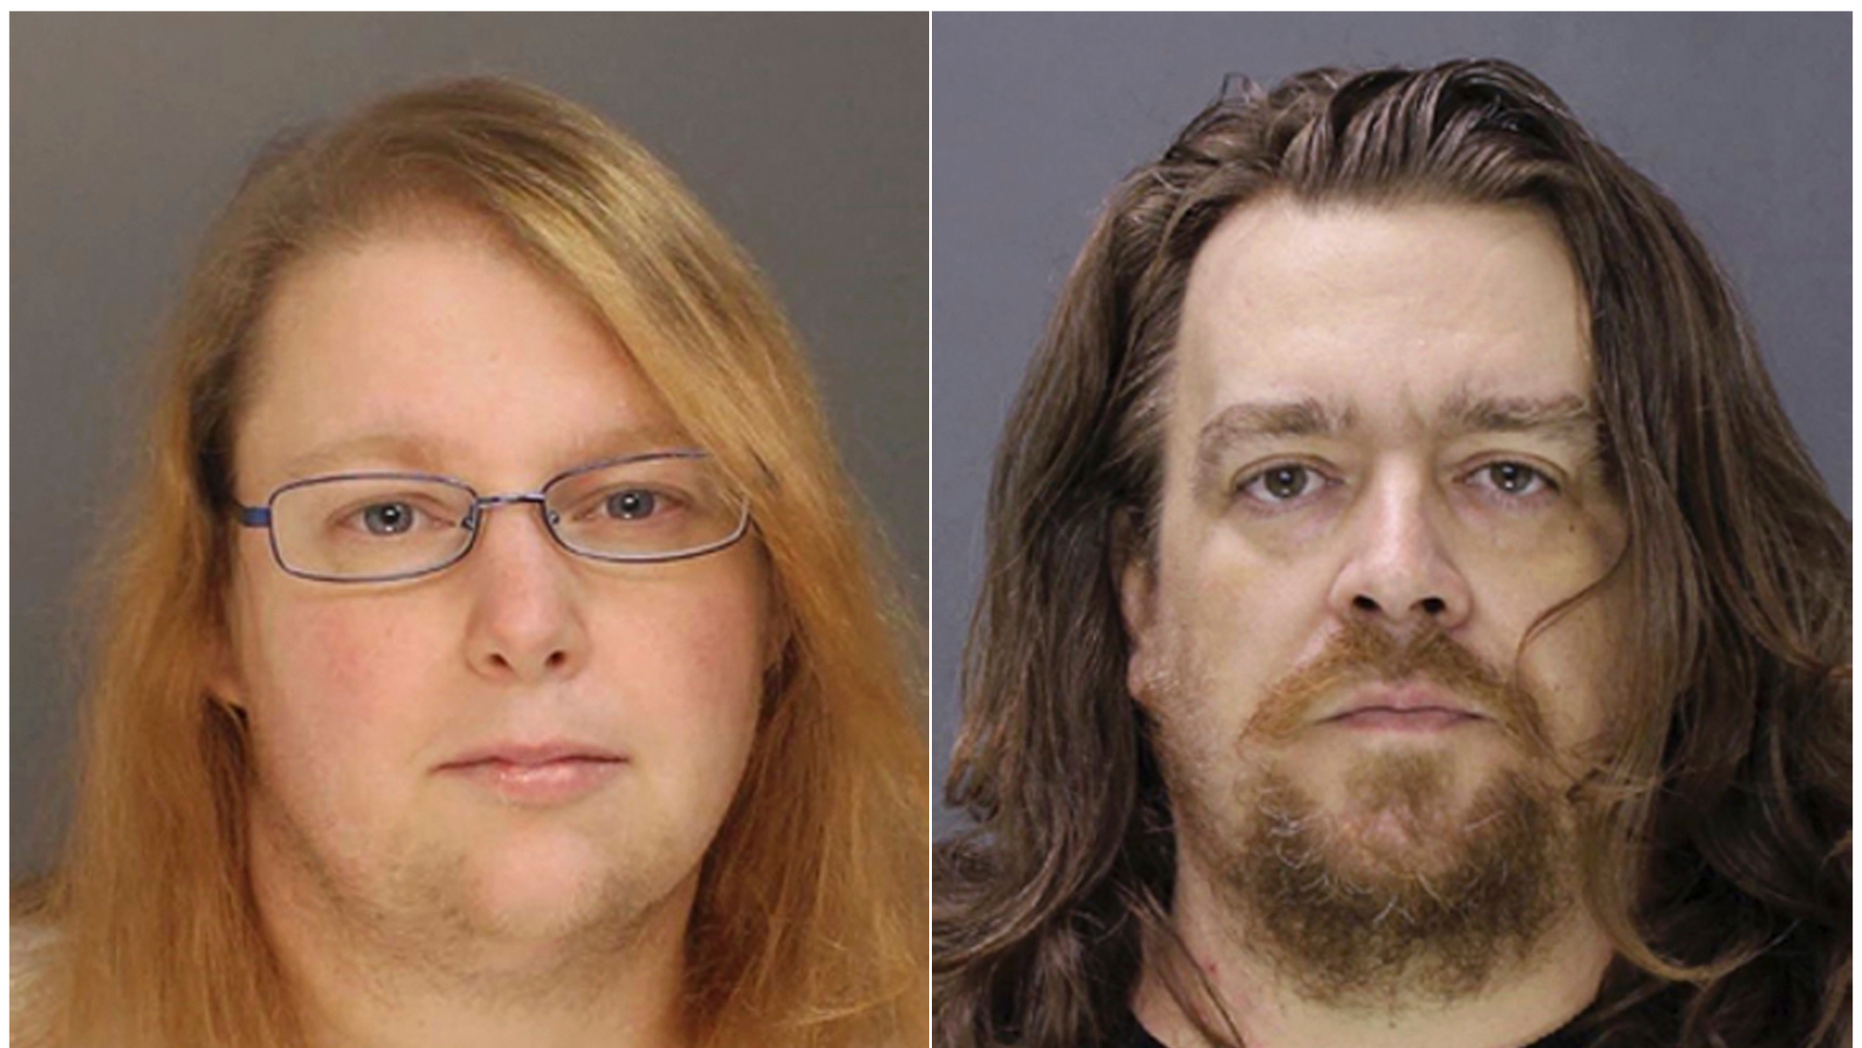 FILE - This combination of file photos provided on Sunday, Jan. 8, 2017, by the Bucks County District Attorney shows Sara Packer, left, and Jacob Sullivan. Sullivan pleaded guilty Tuesday, Feb. 19, 2019, to first-degree murder in the 2016 death of 14-year-old Grace Packer. Sullivan pleaded guilty to all charges in the 2016 death of Grace Packer. The penalty phase of his trial opens Friday, March 15, 2019 outside Philadelphia. A jury will hear testimony about Sullivan's crimes before deciding on a sentence of either life in prison or death. (Bucks County District Attorney via AP, File)